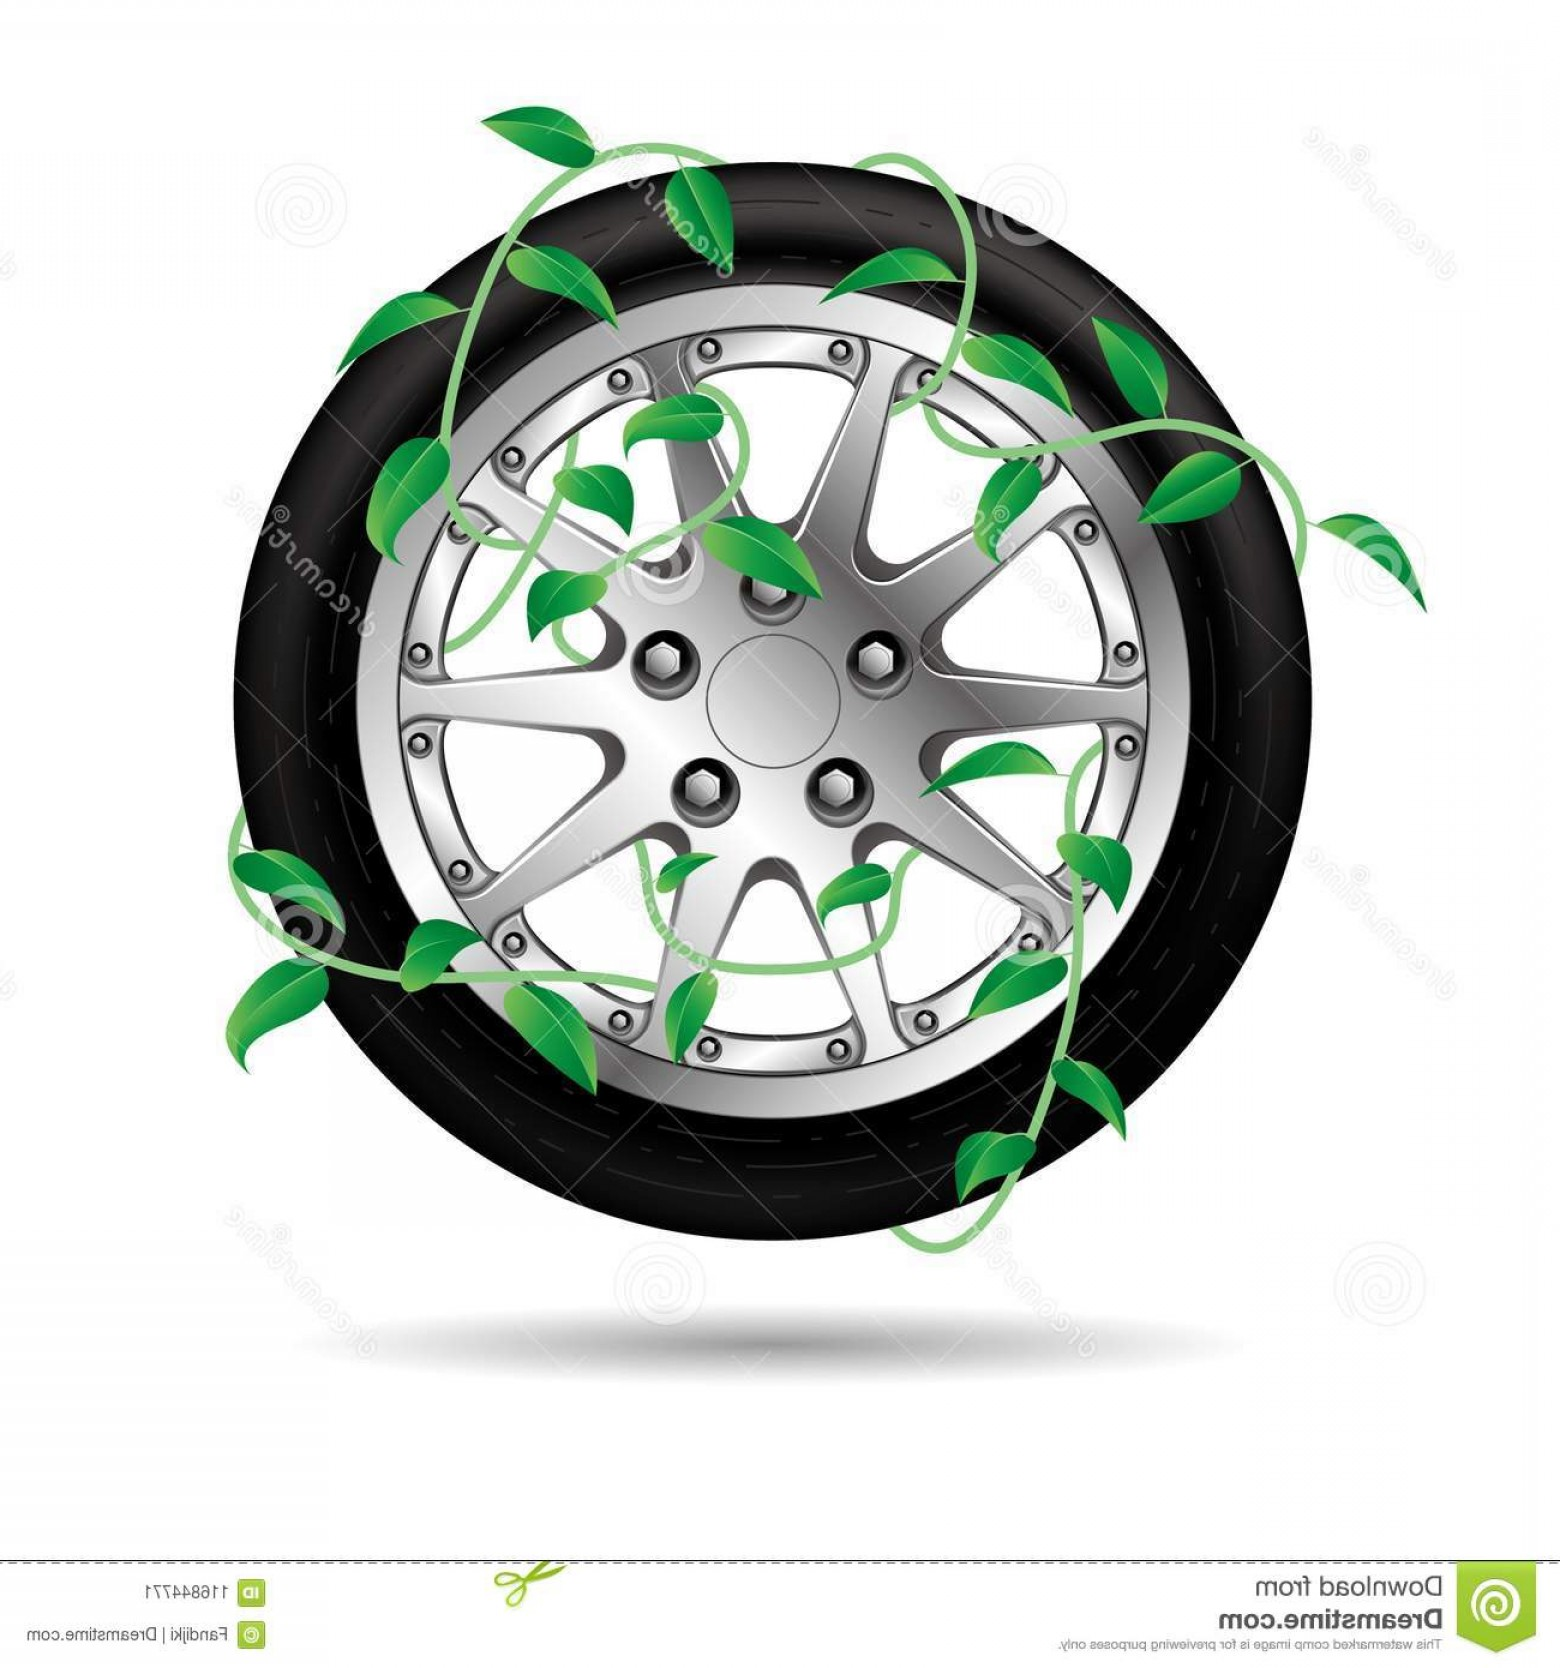 MB Wheels Vector Chrome: Vector Drawing Car Tires Vine Winding Wheels Background White Vector Drawing Car Tires Vine Winding Wheels Image